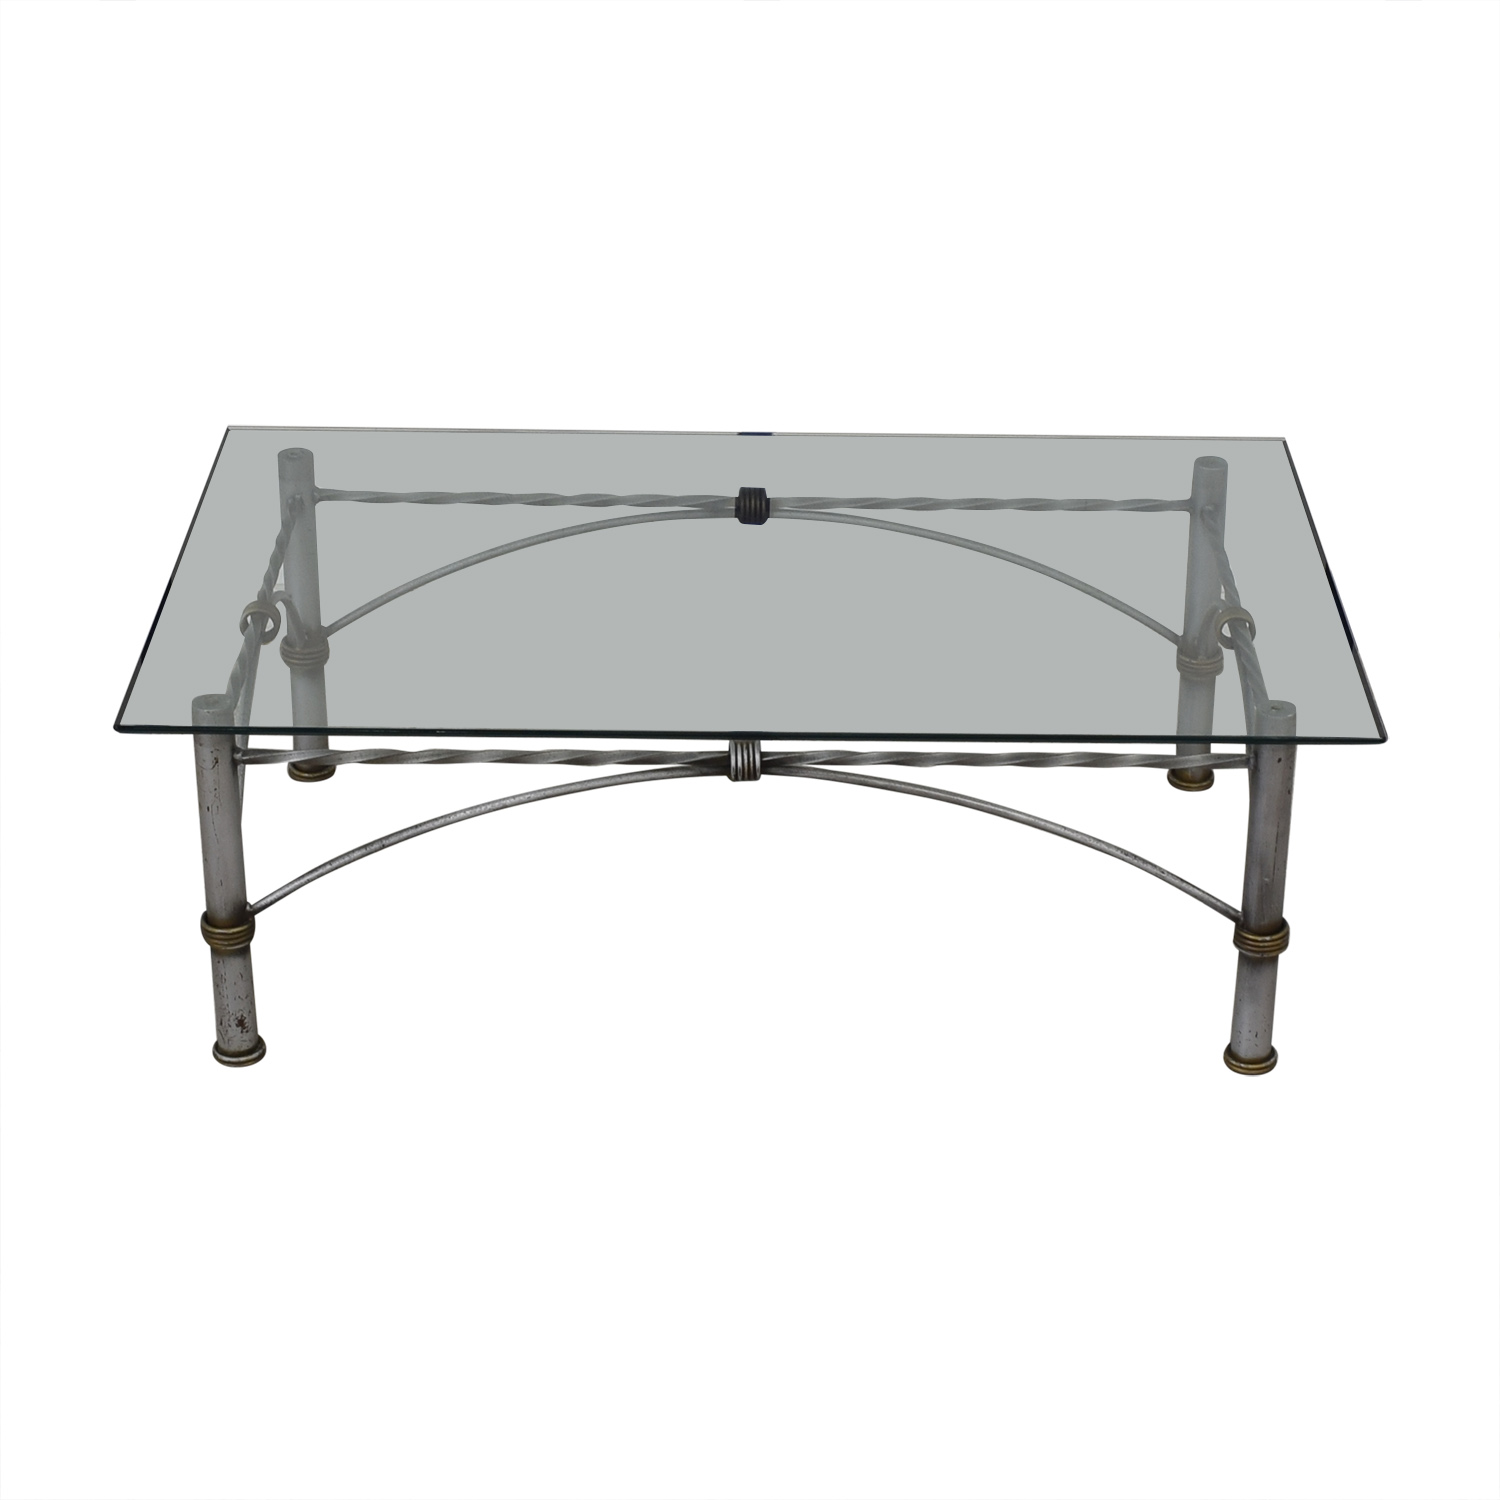 Restoration Hardware Restoration Hardware Glass Coffee Table price